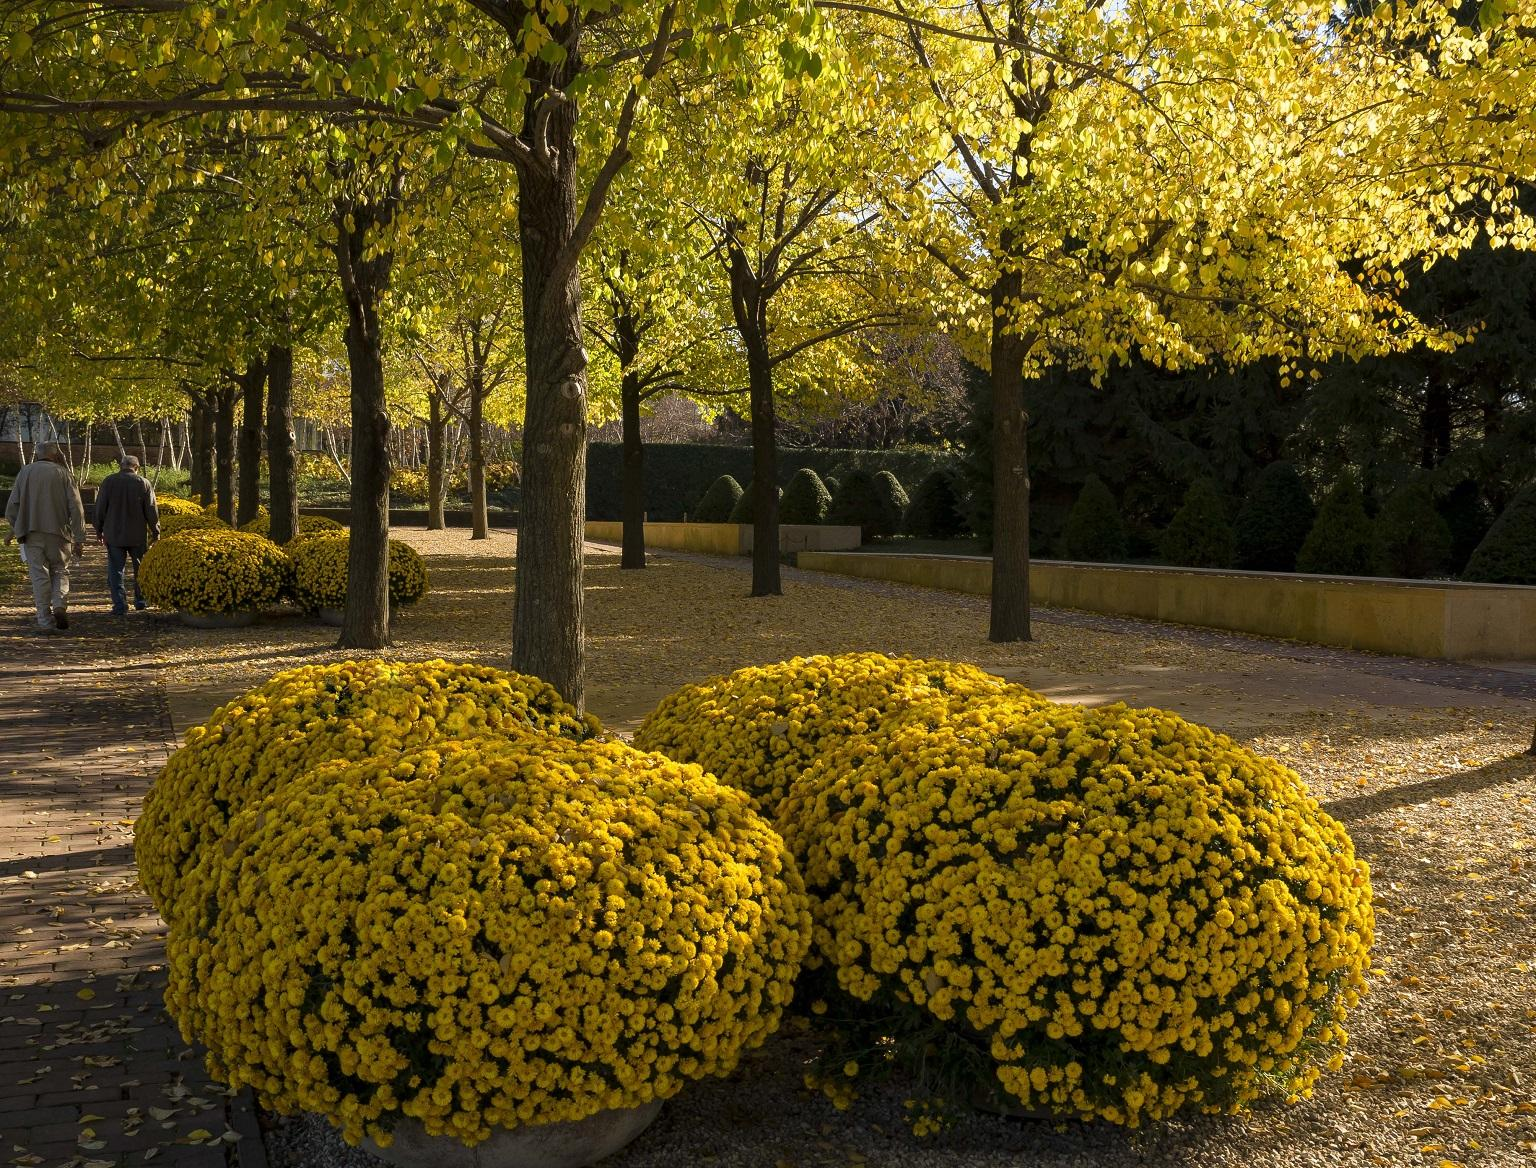 Bright gold colors on display this fall in the Esplanade at the Chicago Botanic Garden (Courtesy Chicago Botanic Garden)